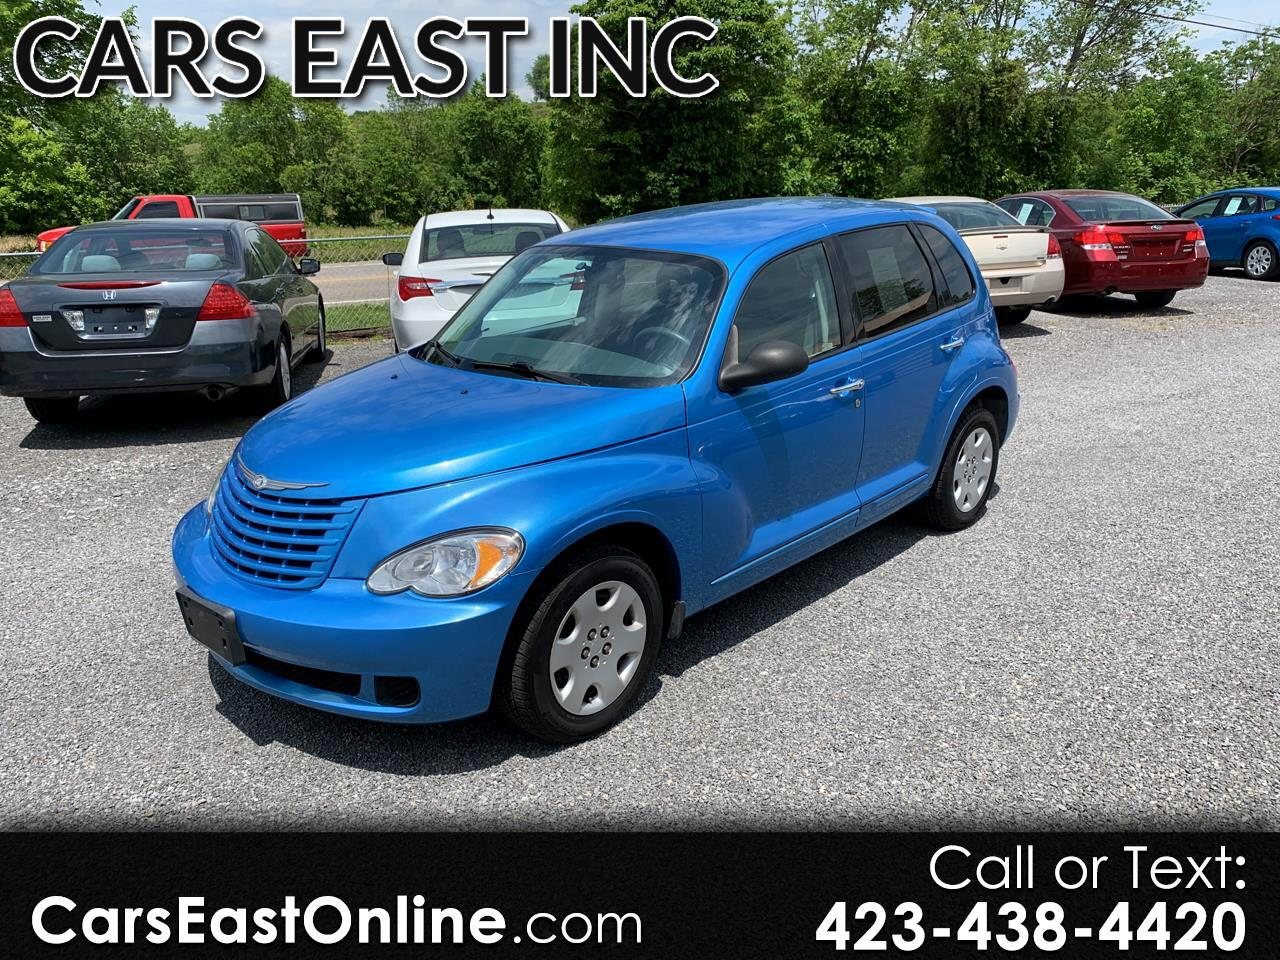 2008 Chrysler PT Cruiser 4dr Wgn